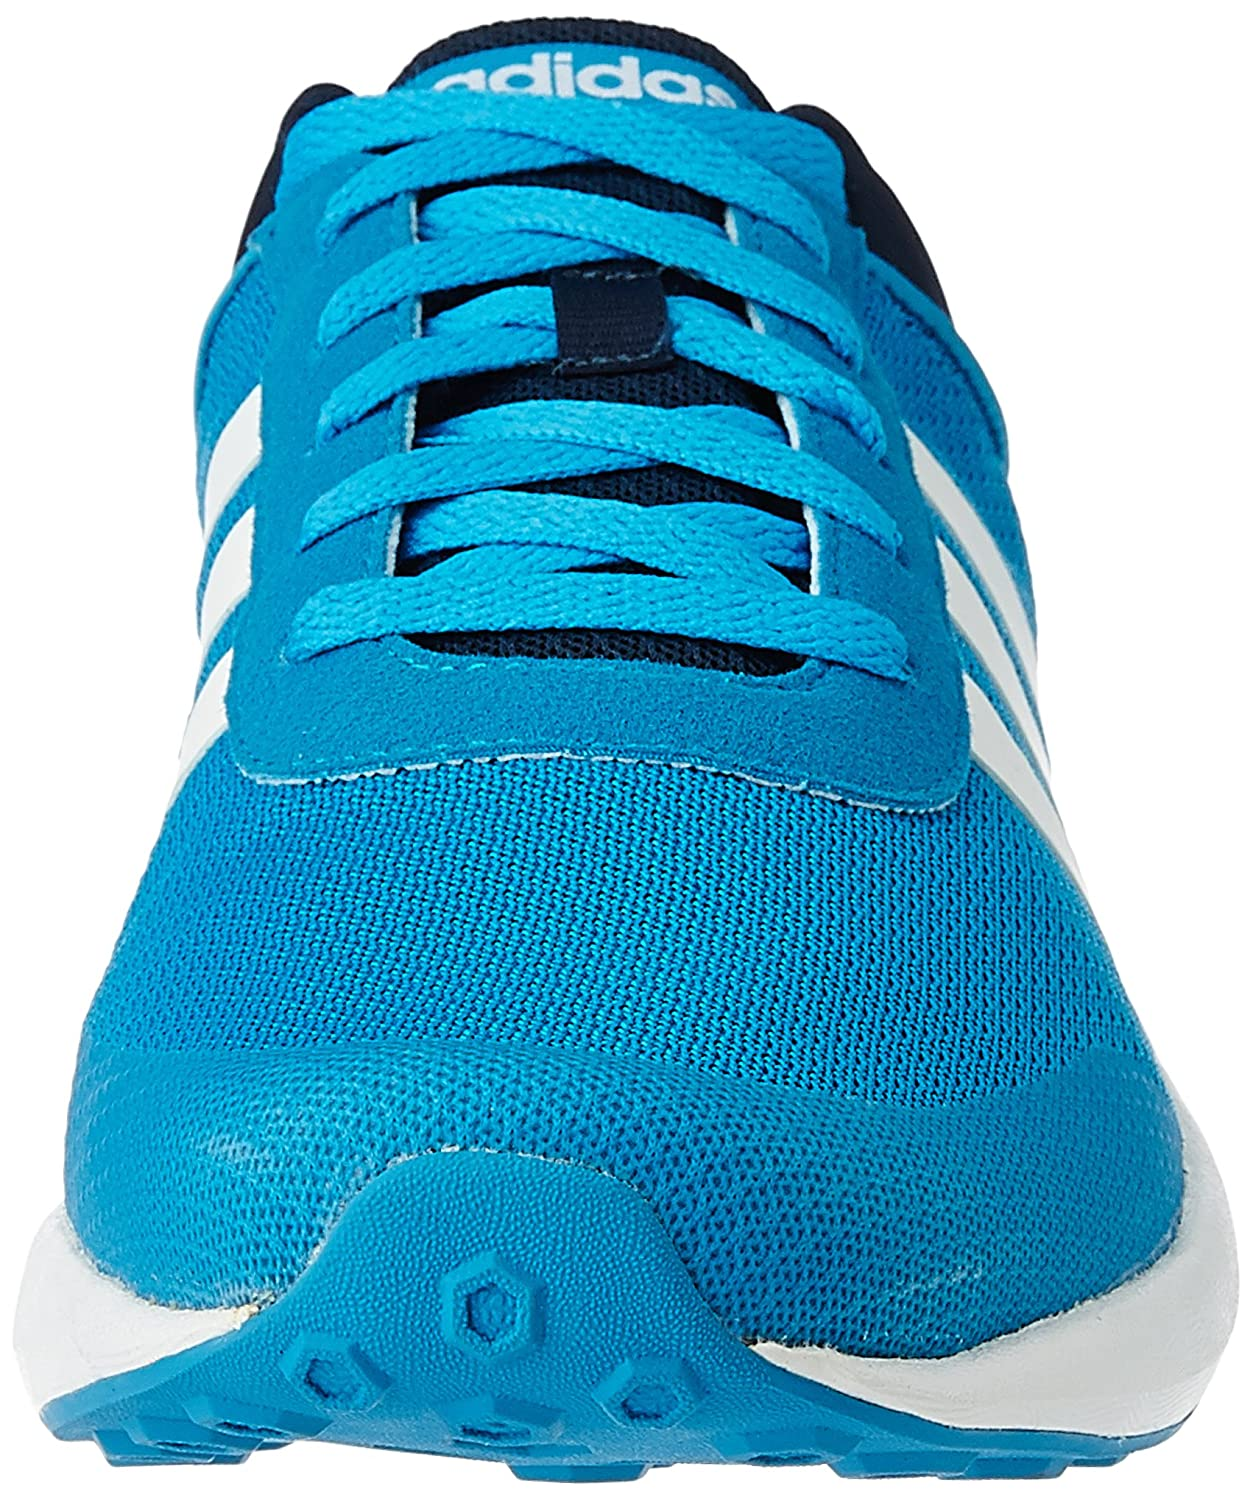 df9ad055e80ab1 ... closeout adidas neo mens cloudfoam race solblu ftwwht and conavy  sneakers 11 uk india 46 eu